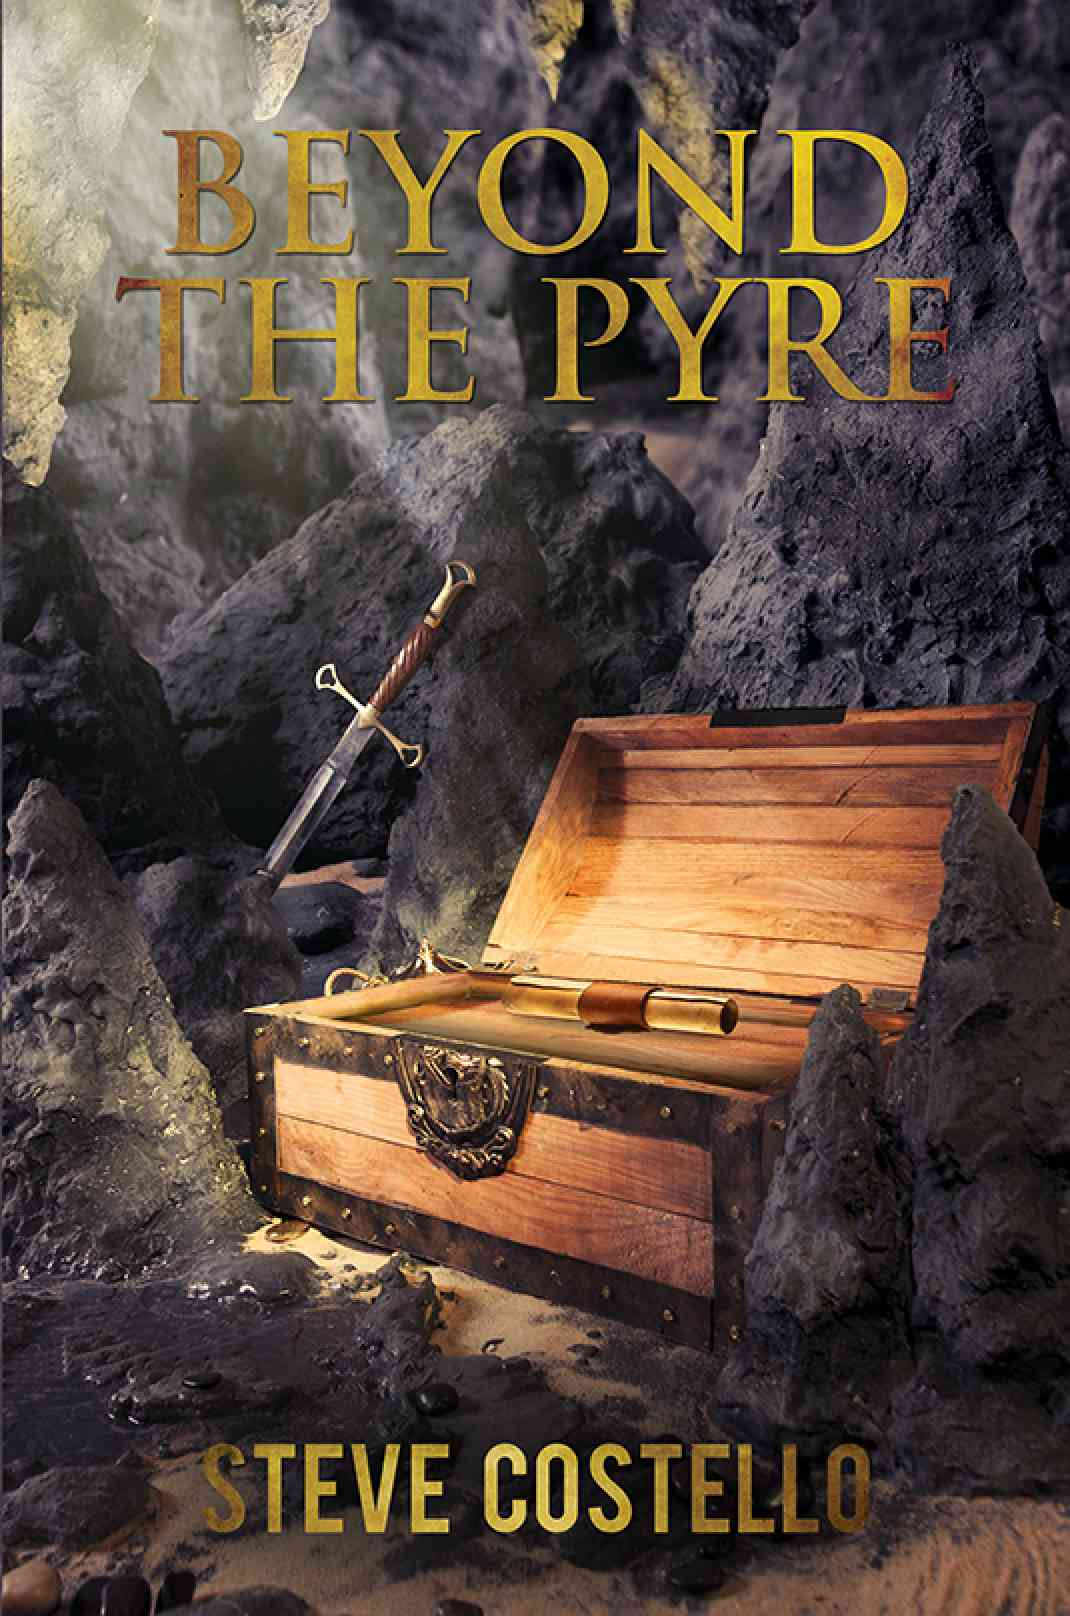 Beyond the Pyre